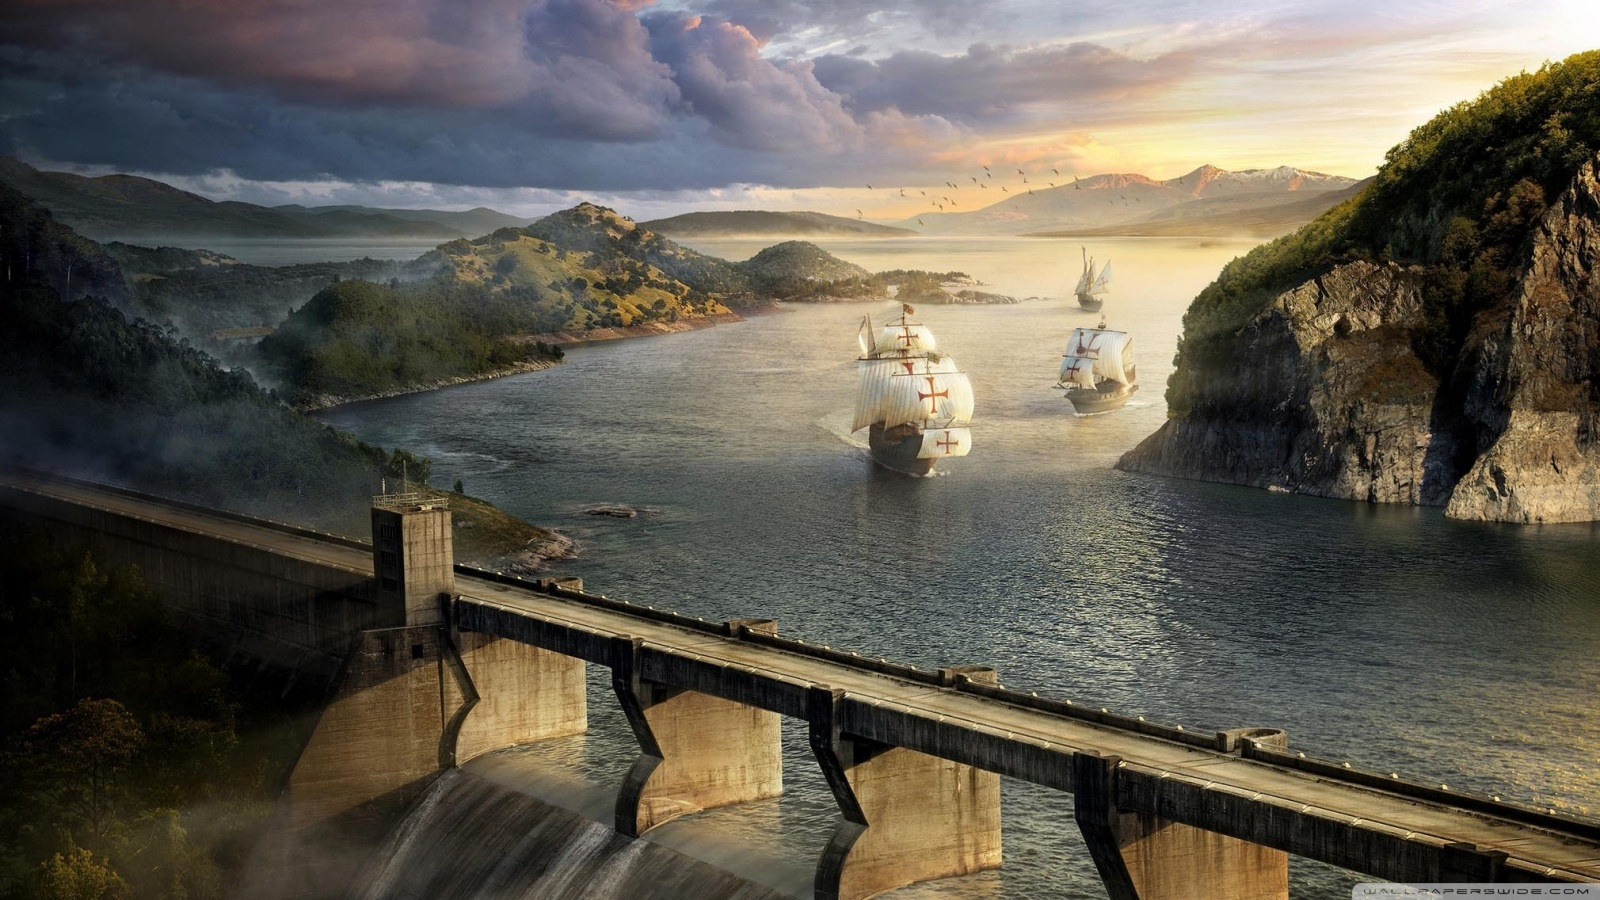 Modern dams and old ships 49682